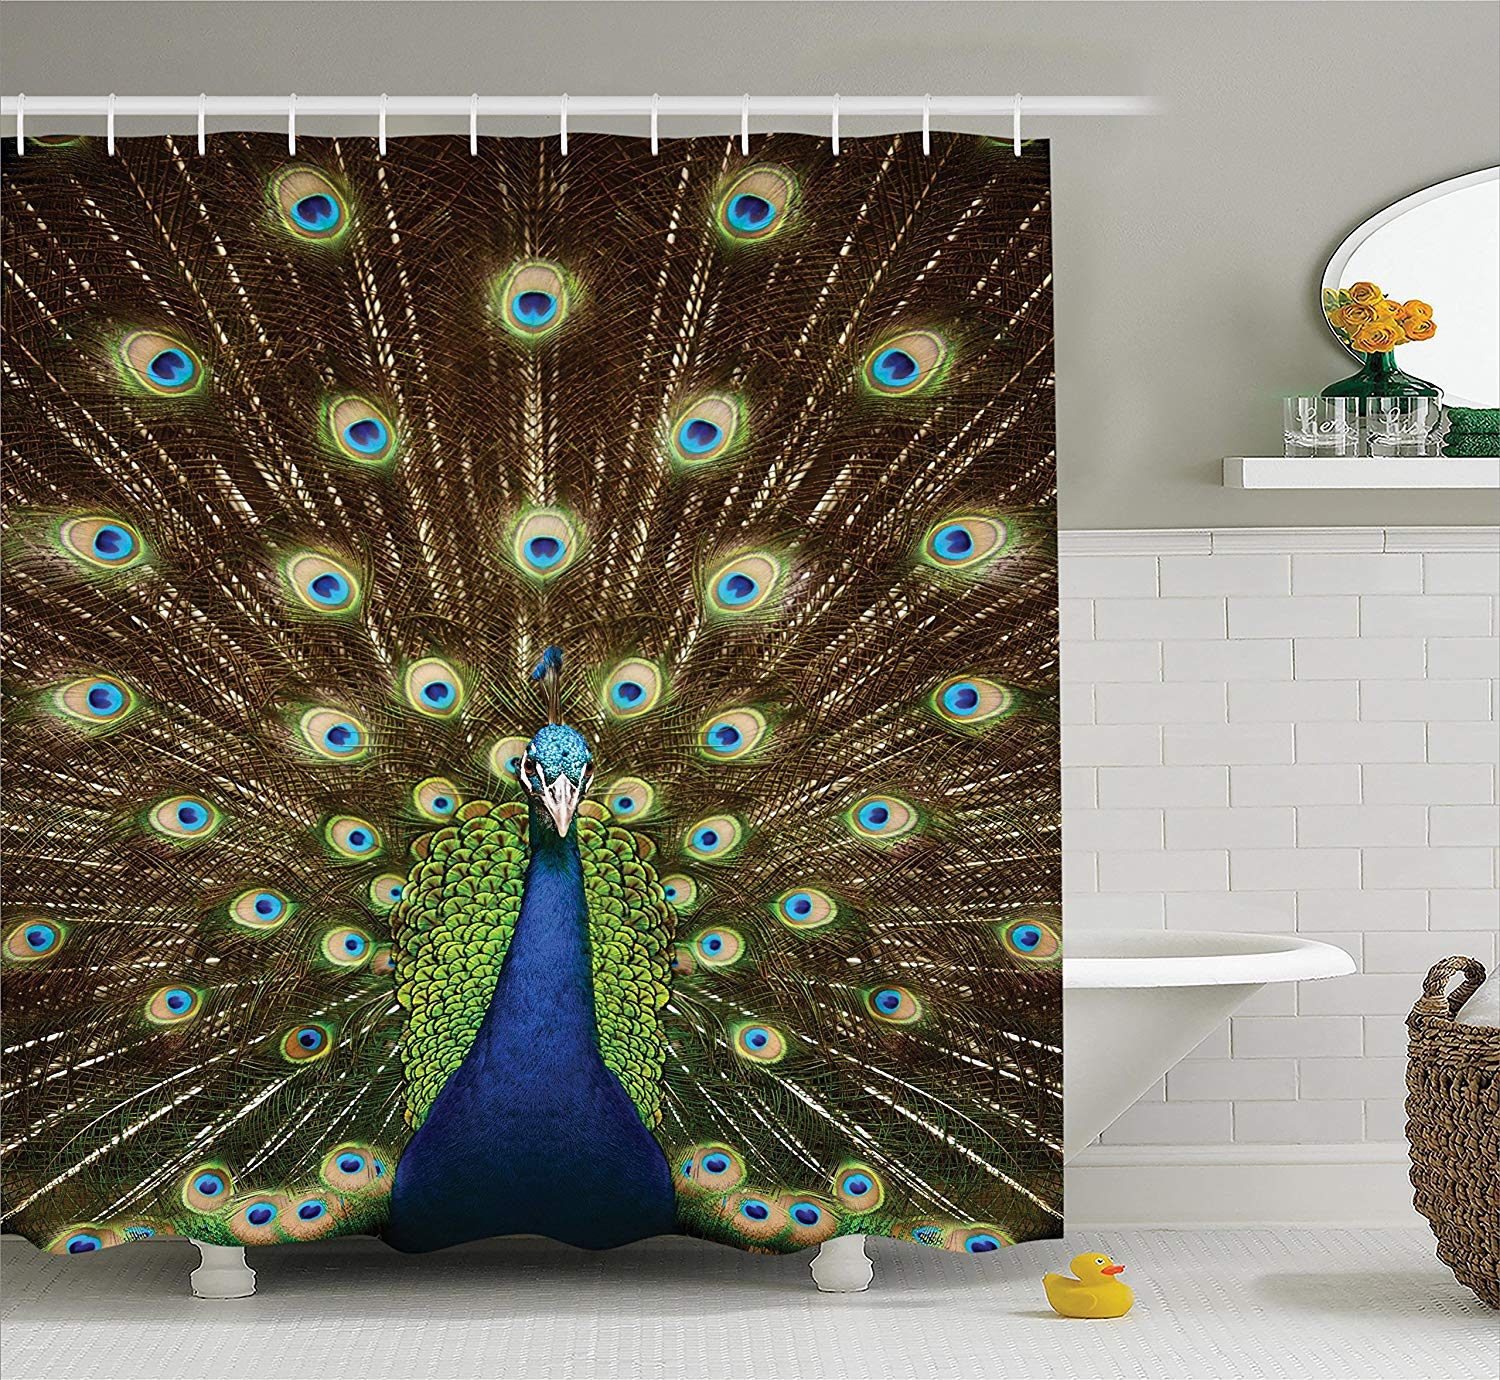 Us 18 51 40 Off Peacock Shower Curtain Decor Portrait Of Peacock With Feathers Out Vibrant Colors Birds Summertime Garden Fabric Bathroom In Shower